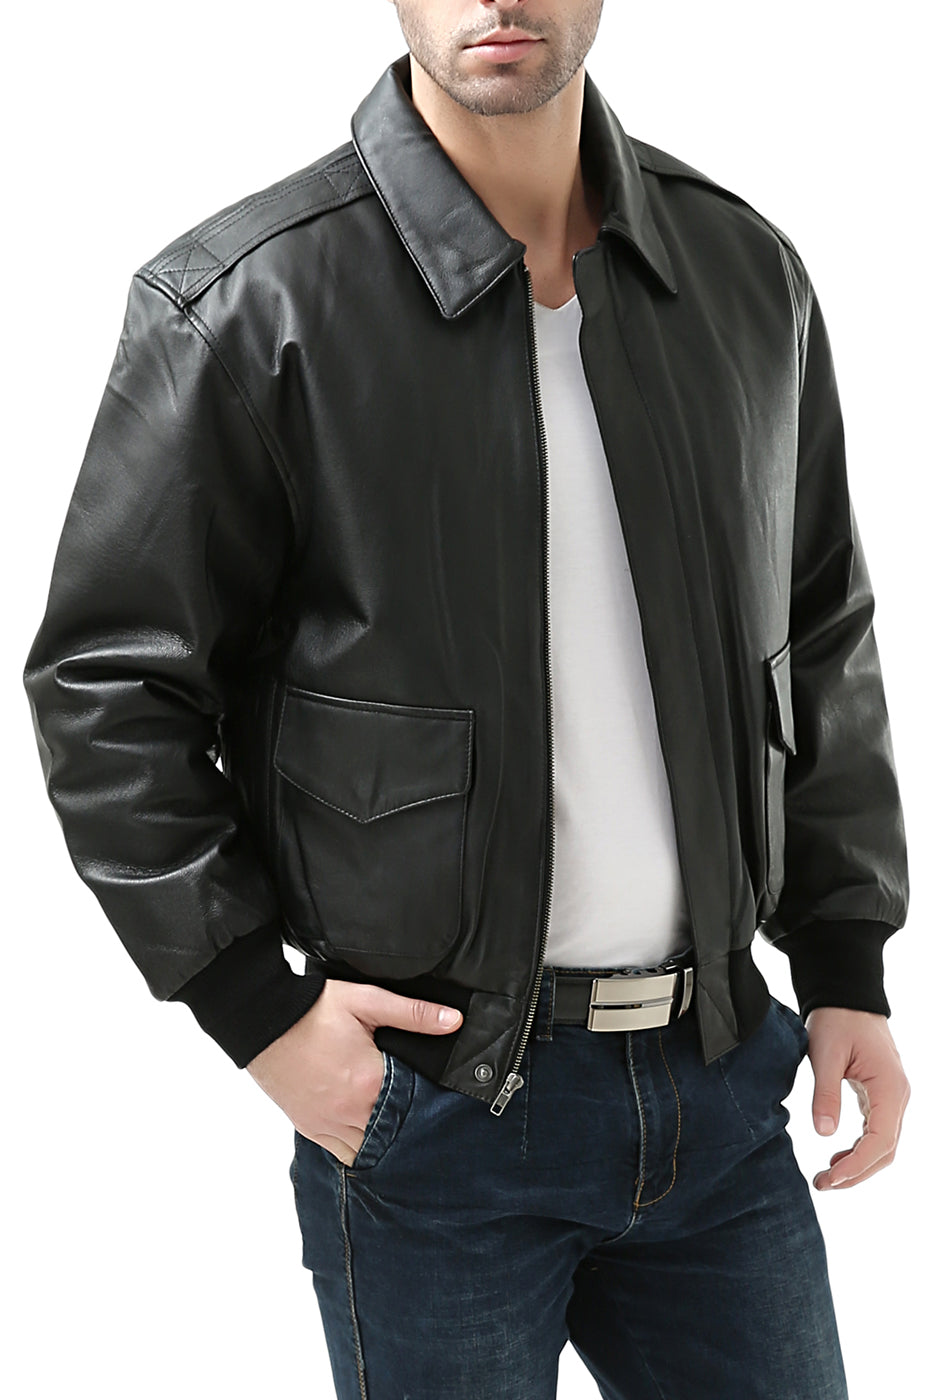 Men/'s Air Force A-2 Leather Flight Bomber Jacket